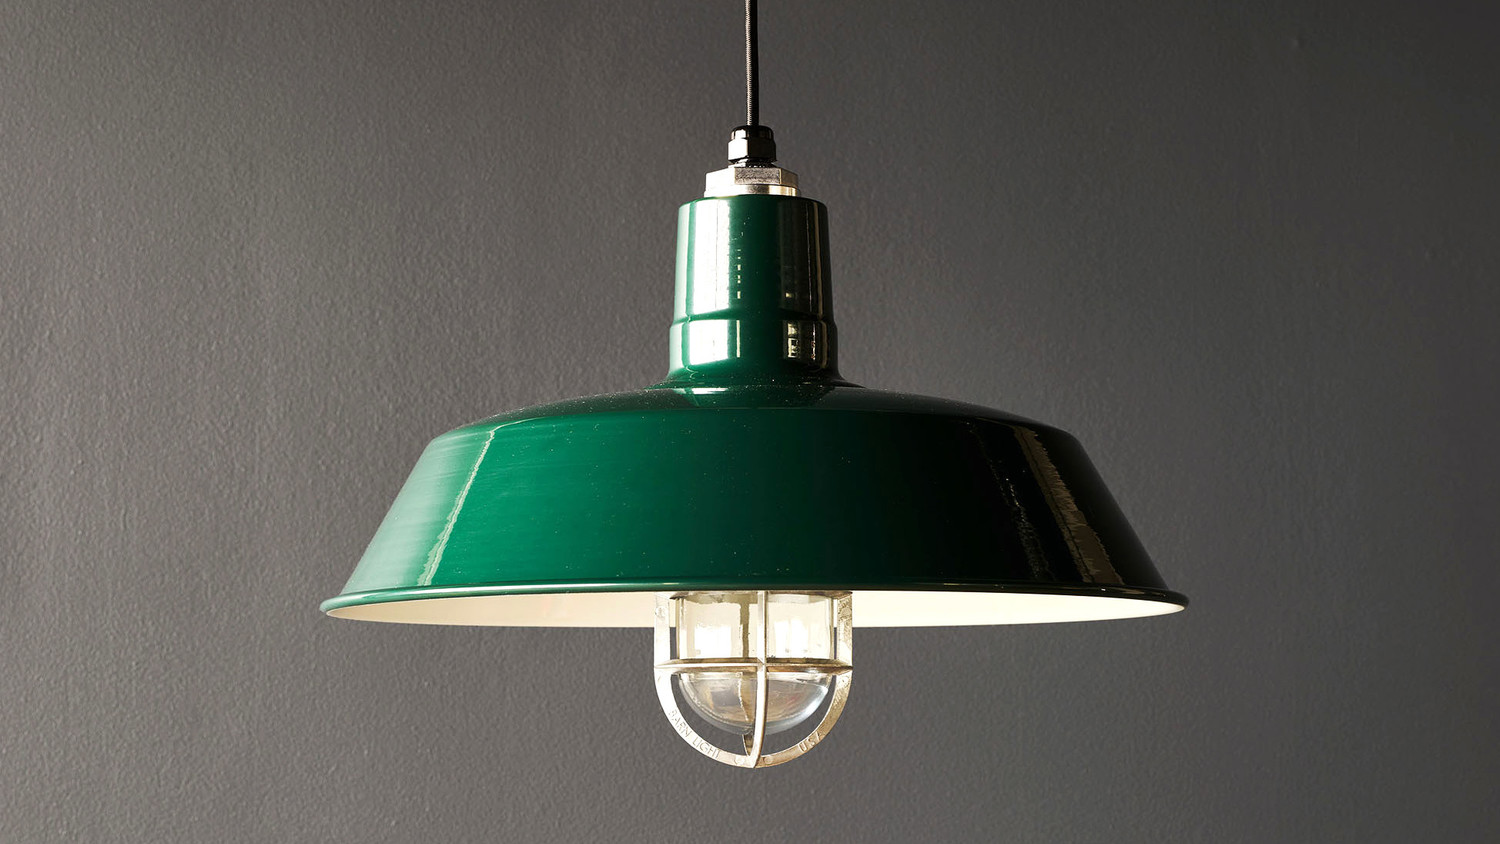 7 Wide JVI Designs 1300-15 G7-SR 1-Light Grand Central Pendant with Antique Mercury Hurricane Mouth Blown Glass Shade